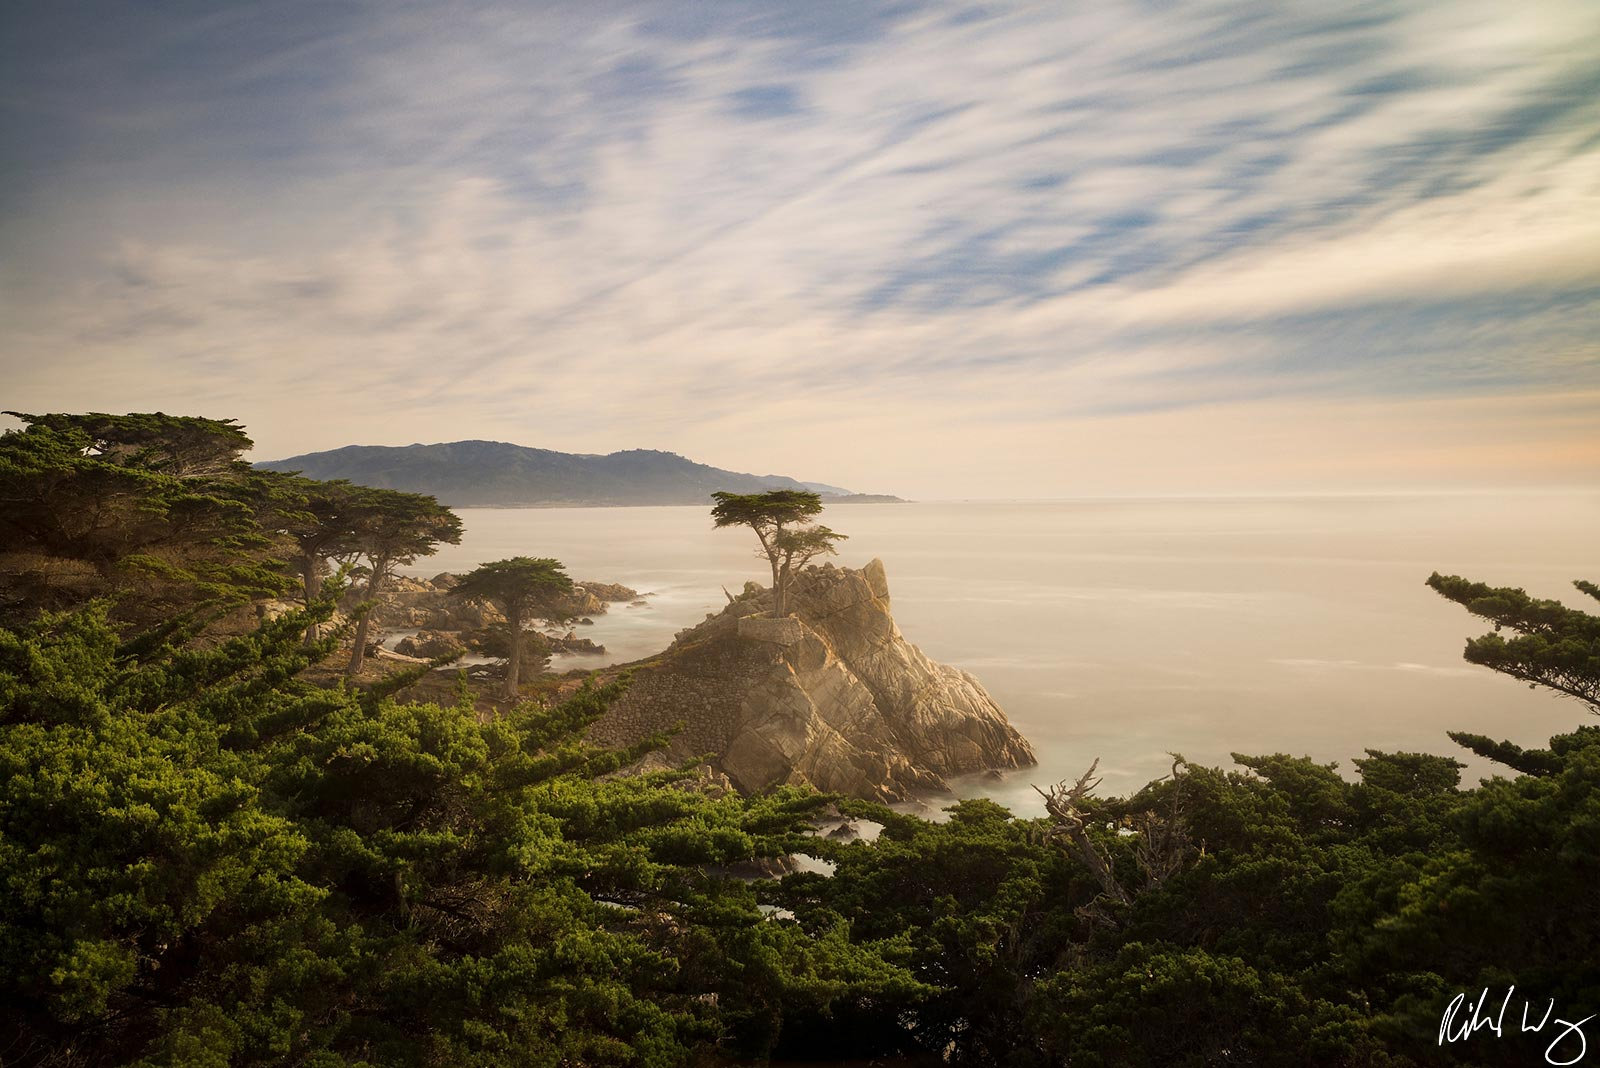 the lone cypress tree, 17 mile drive, pebble beach, california, photo, photo